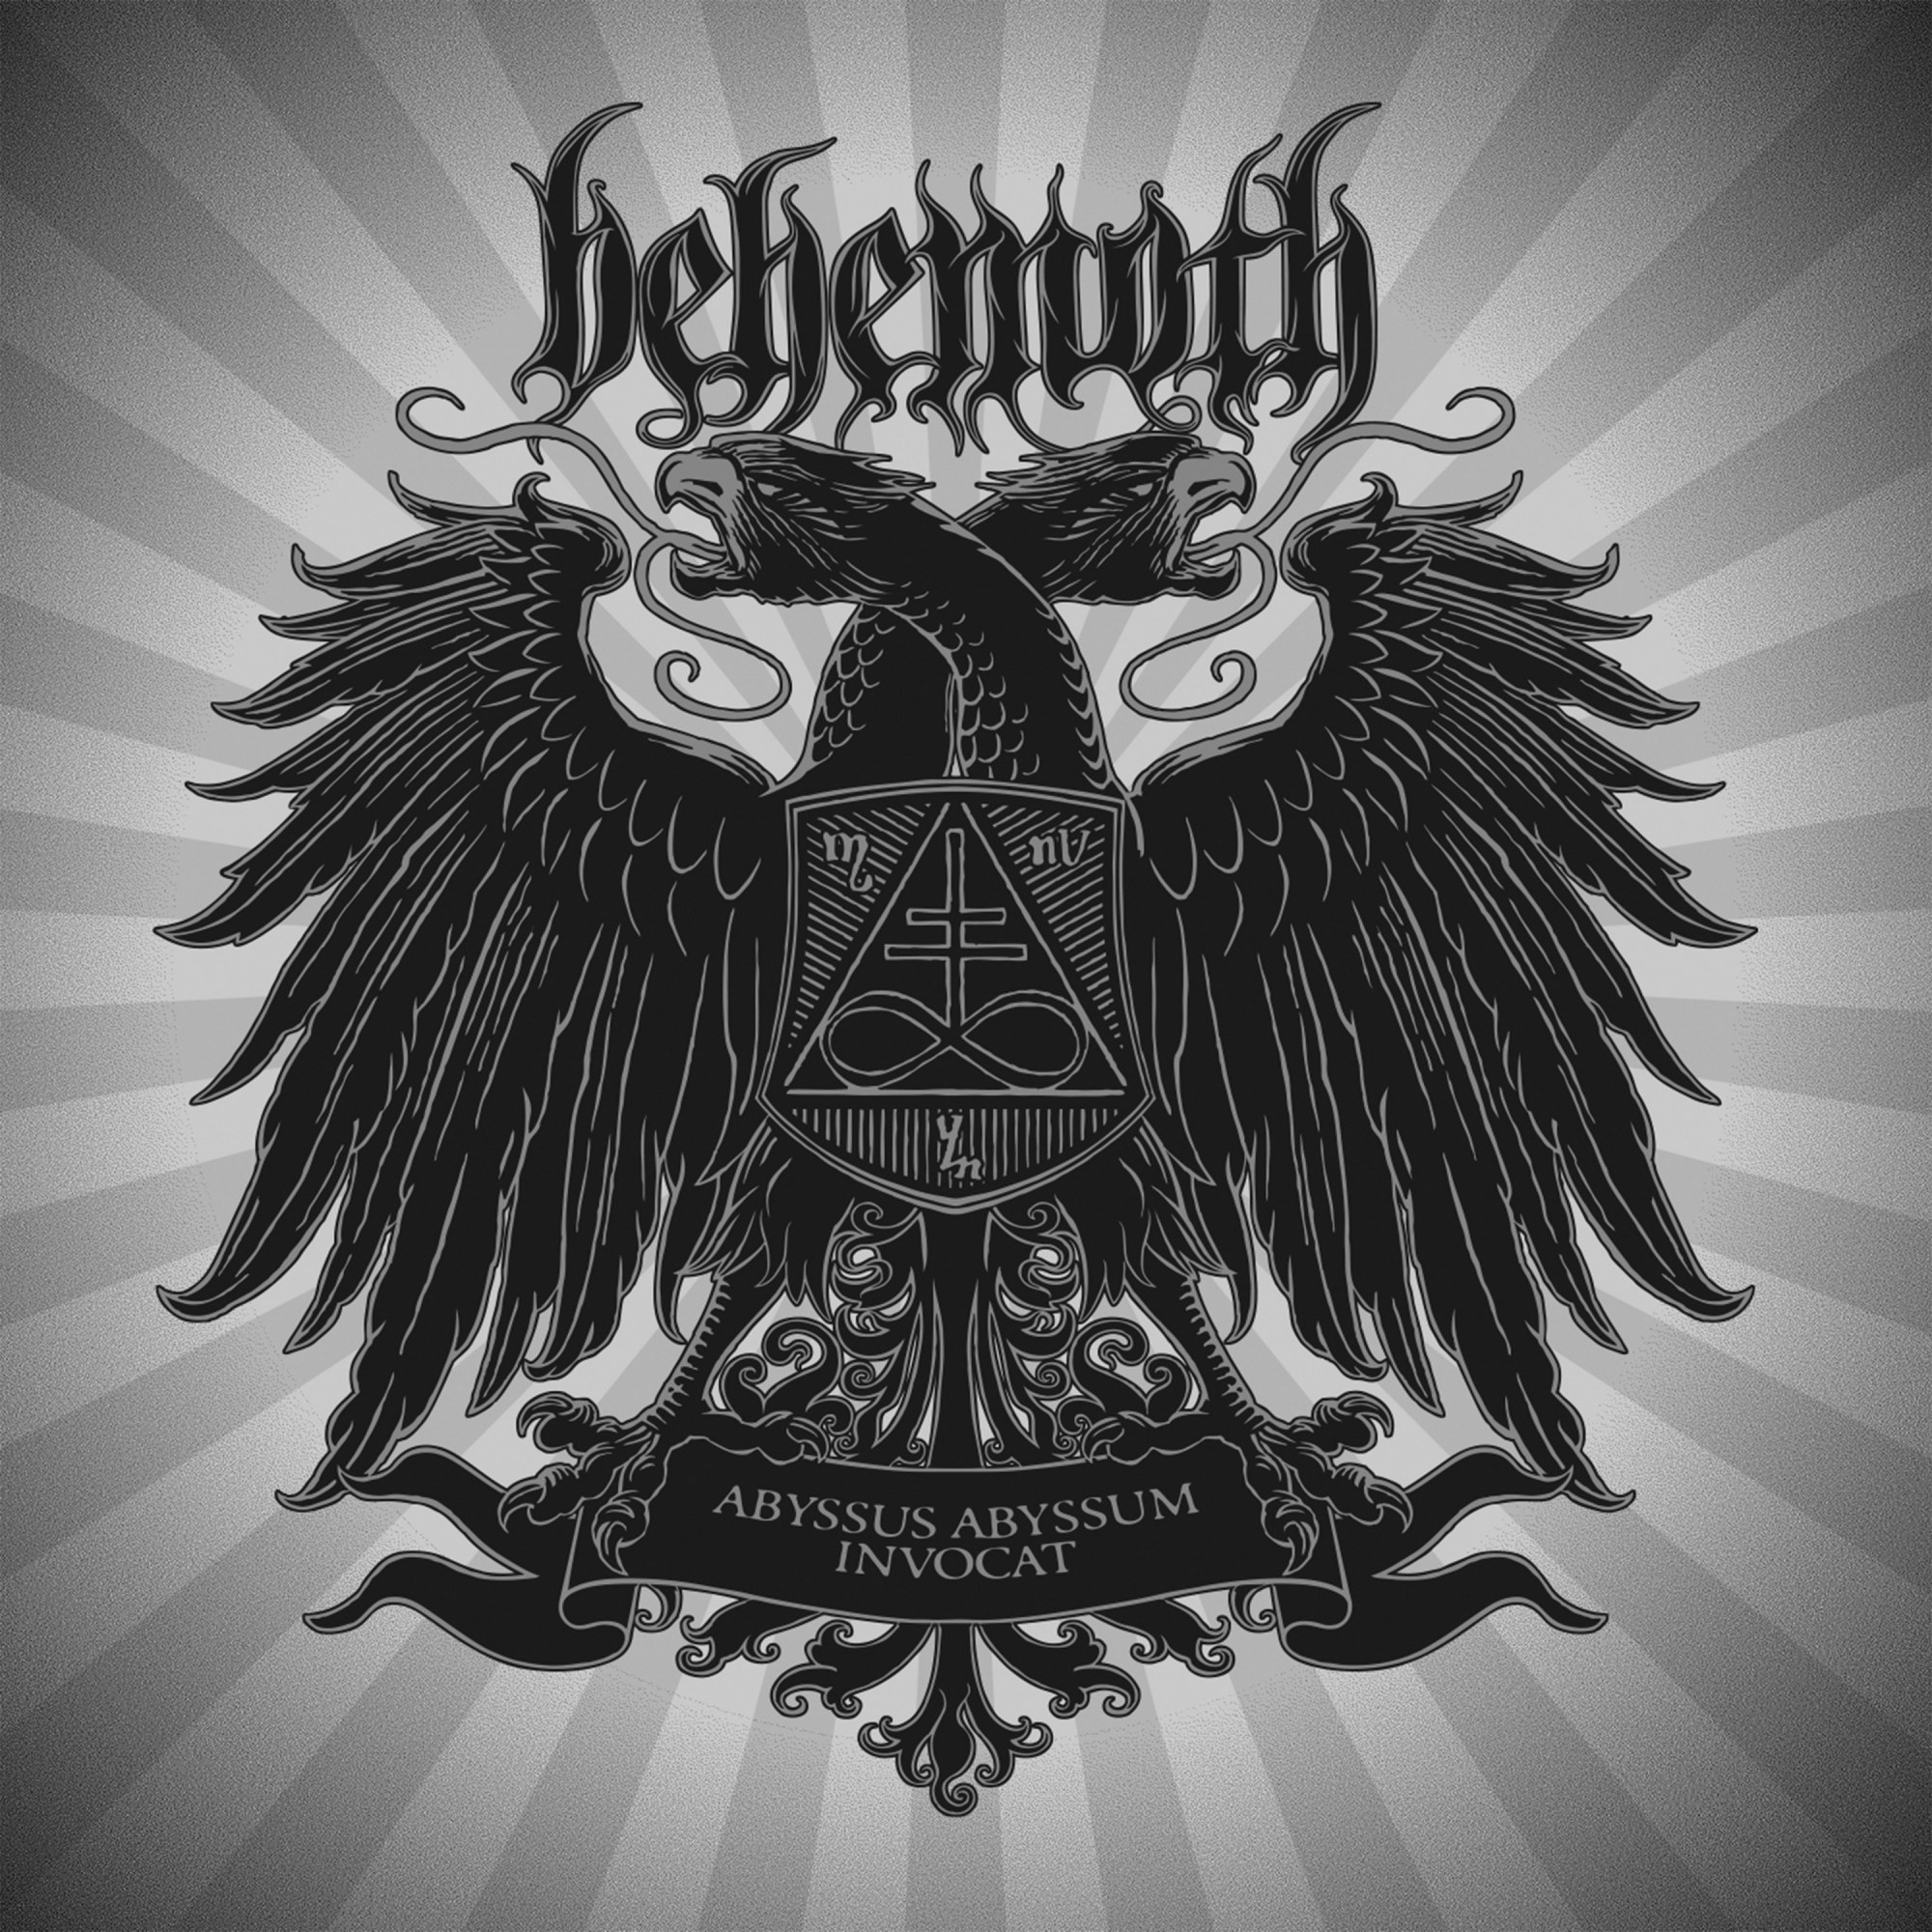 Review for Behemoth (POL) - Abyssus Abyssum Invocat